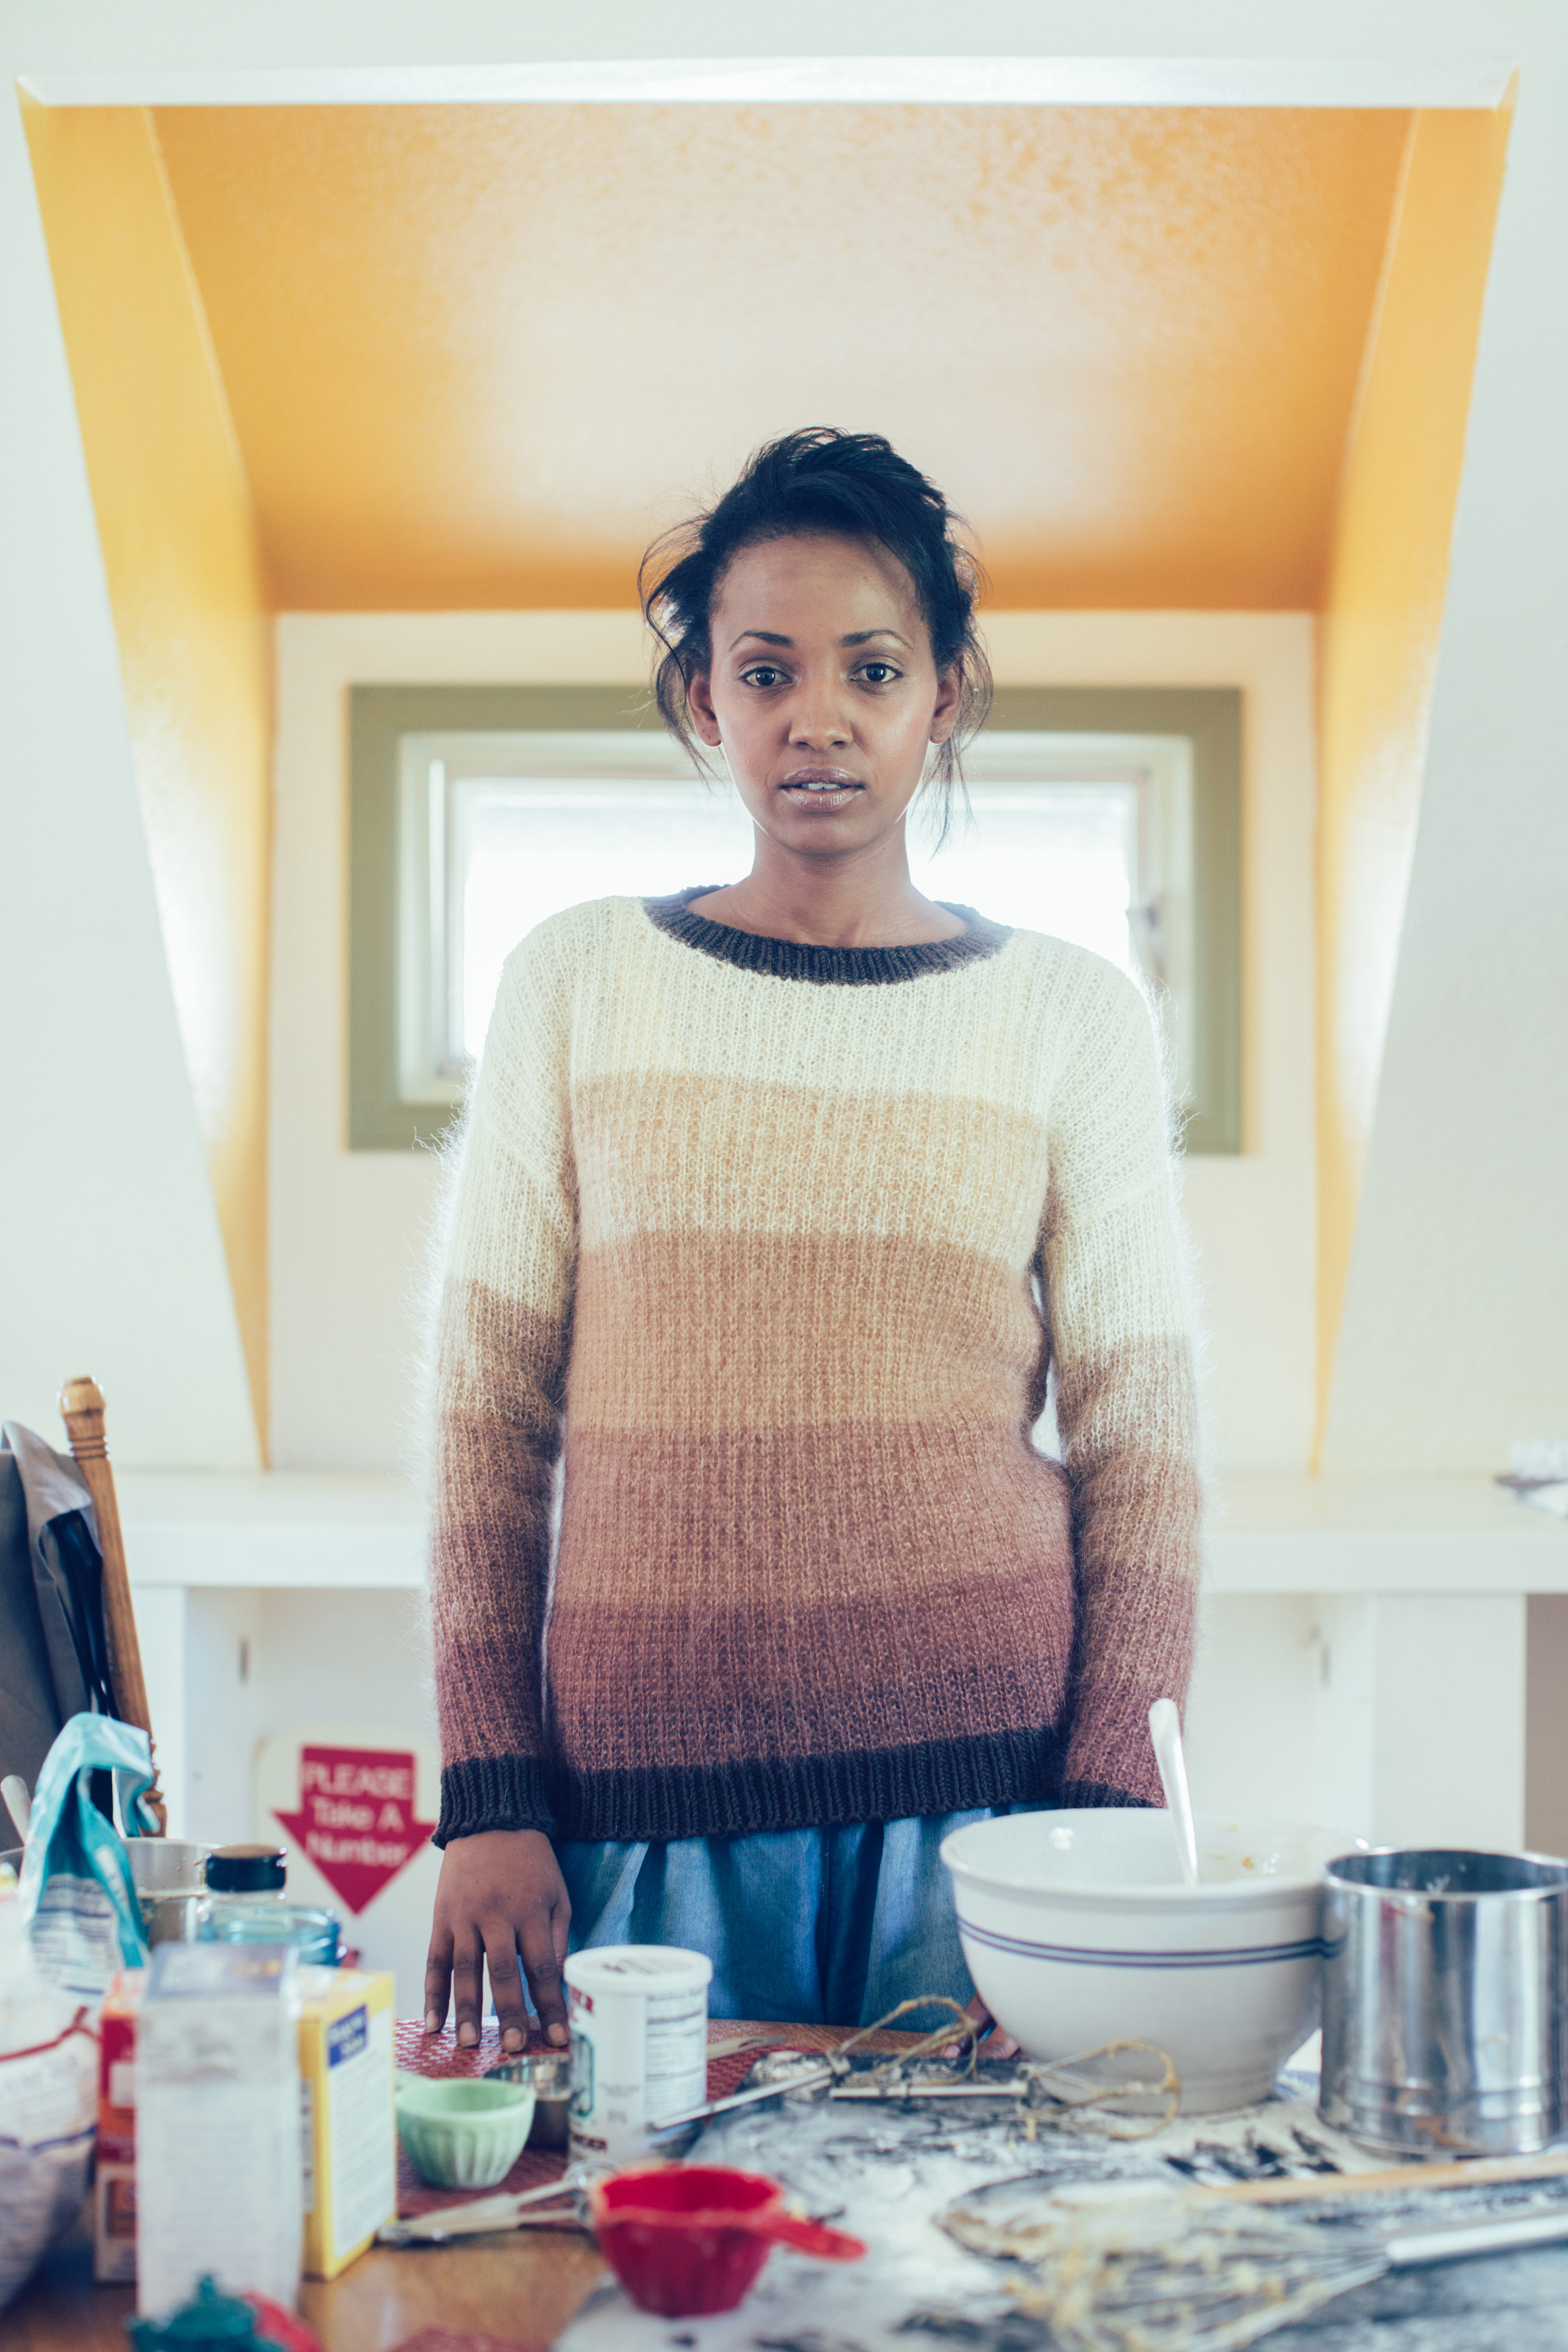 Hot Cocoa Sweater knitting pattern by Shaina Bilow from knitscene Winter 2016